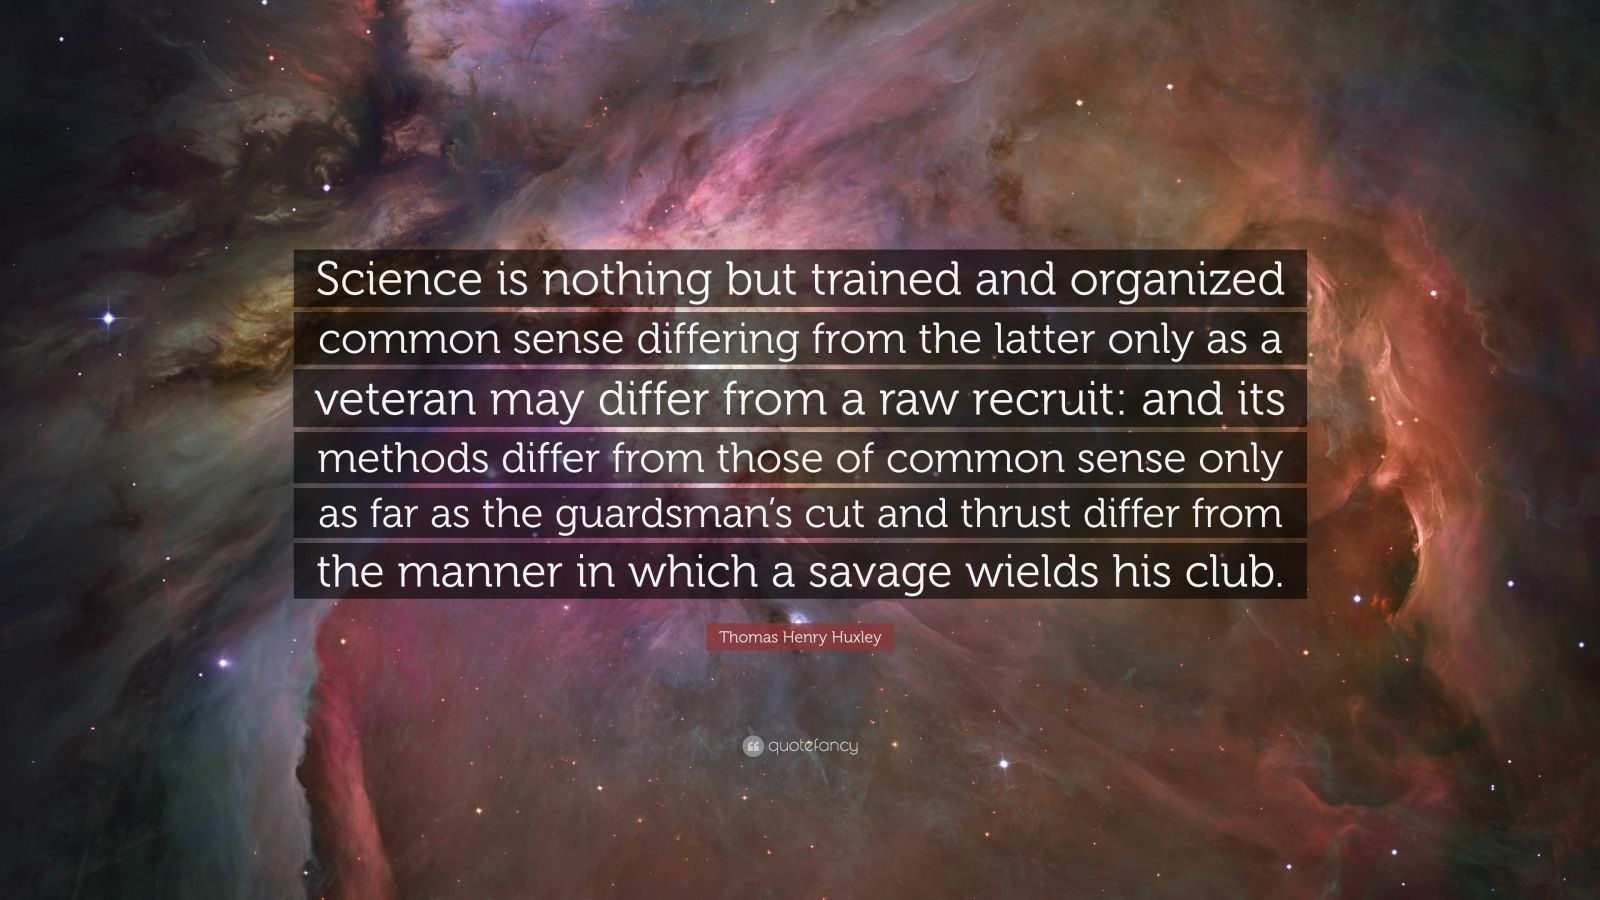 """Thomas Henry Huxley Quote: """"Science is nothing but trained and organized common sense differing from the latter only as a veteran may differ from a raw recruit: and its methods differ from those of common sense only as far as the guardsman's cut and thrust differ from the manner in which a savage wields his club."""""""